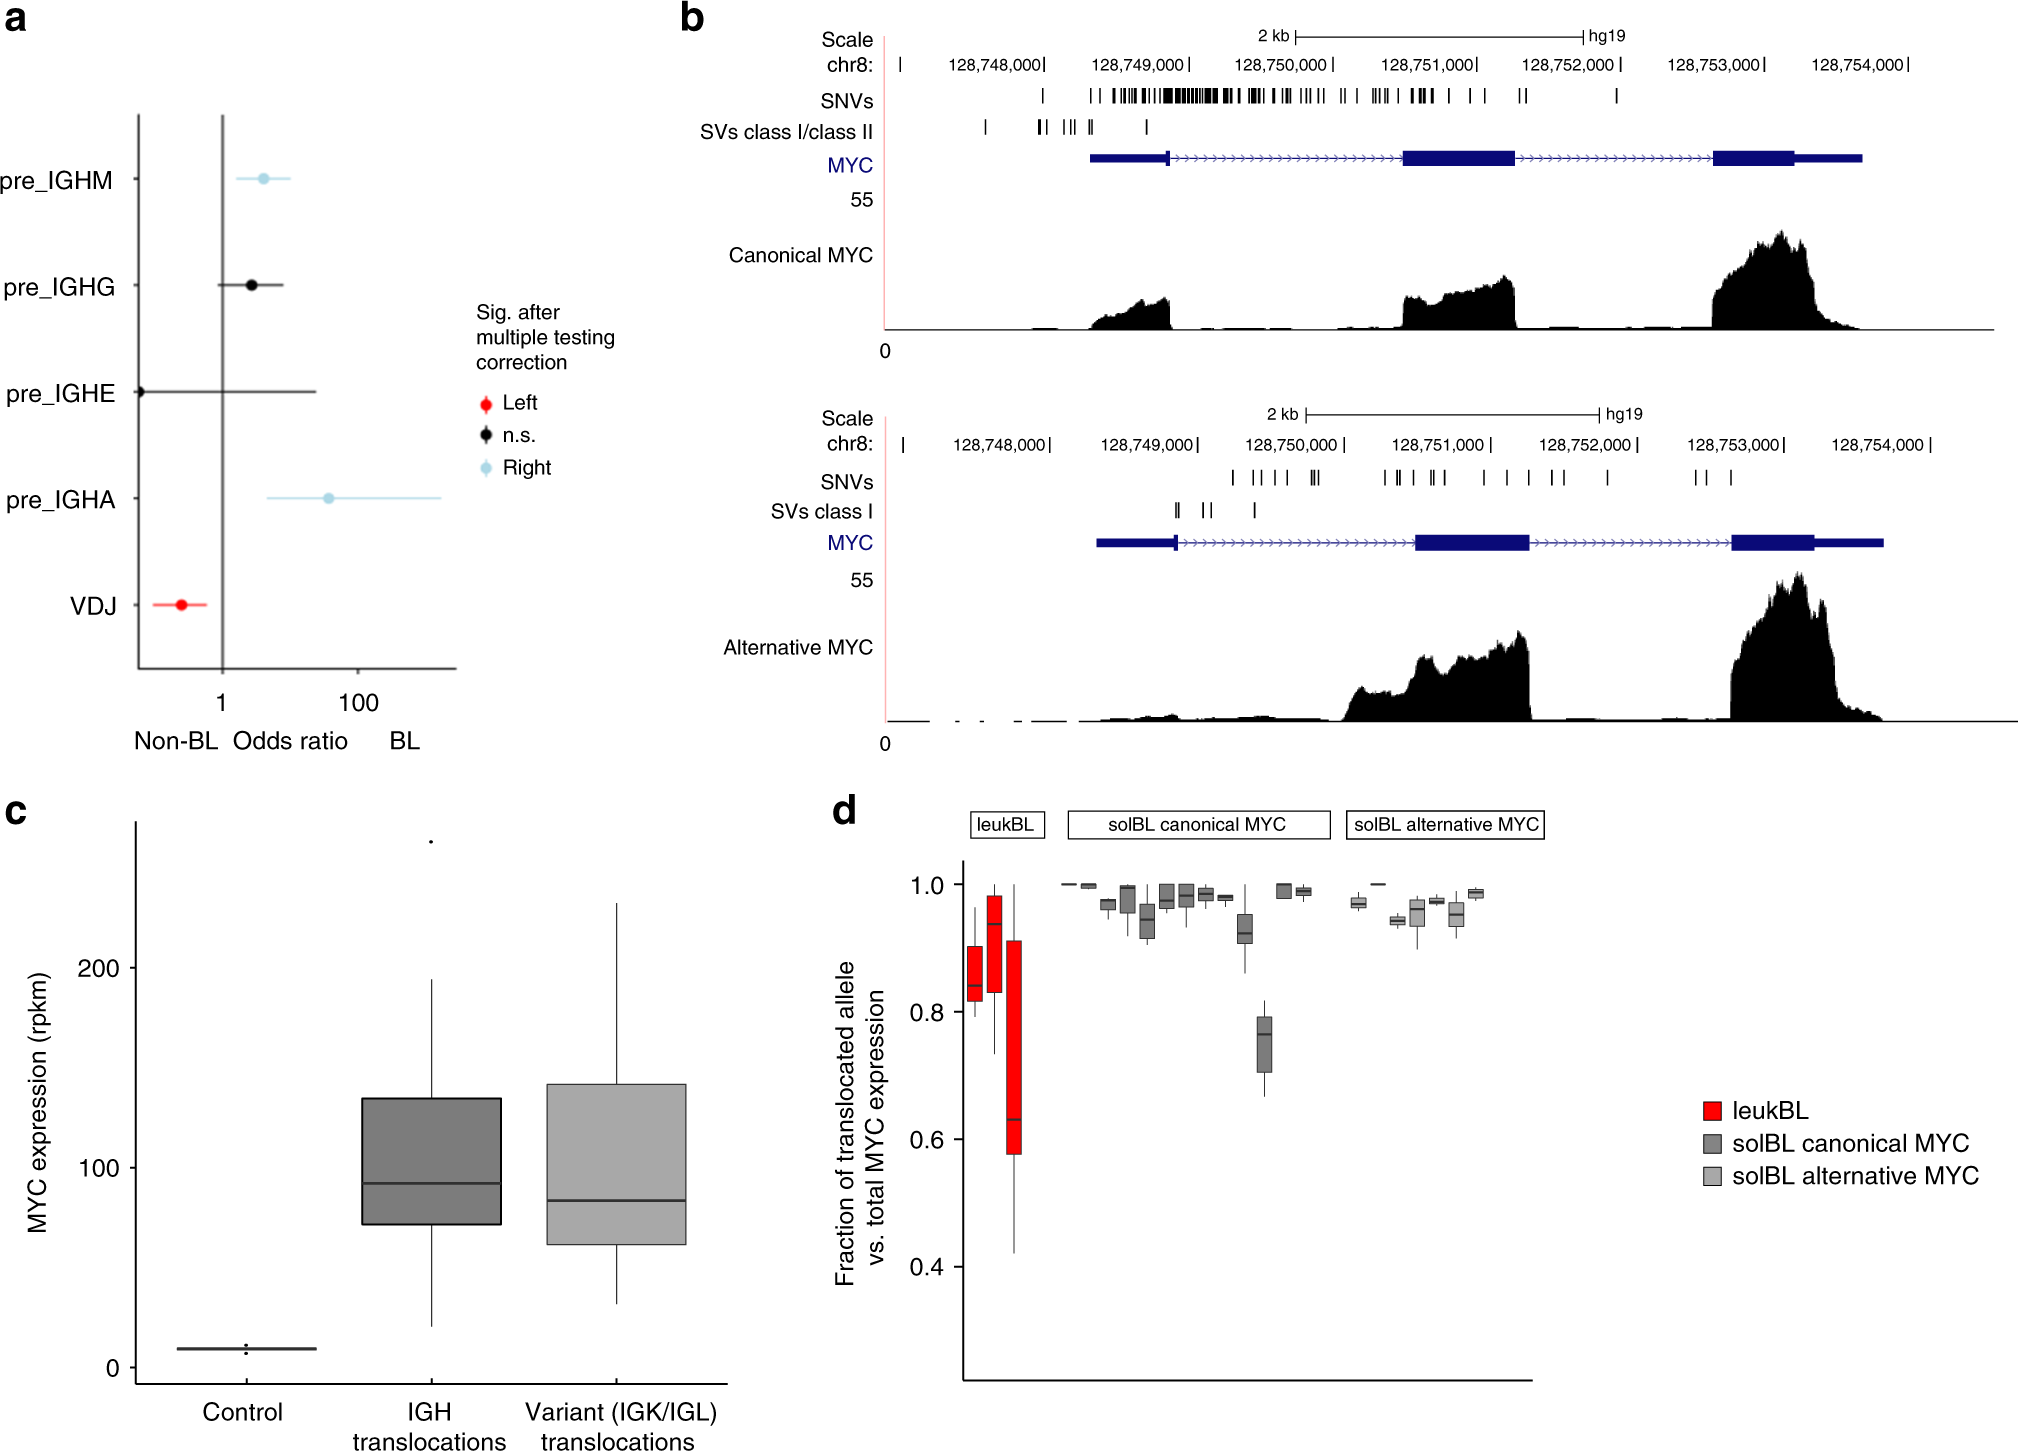 Genomic and transcriptomic changes complement each other in